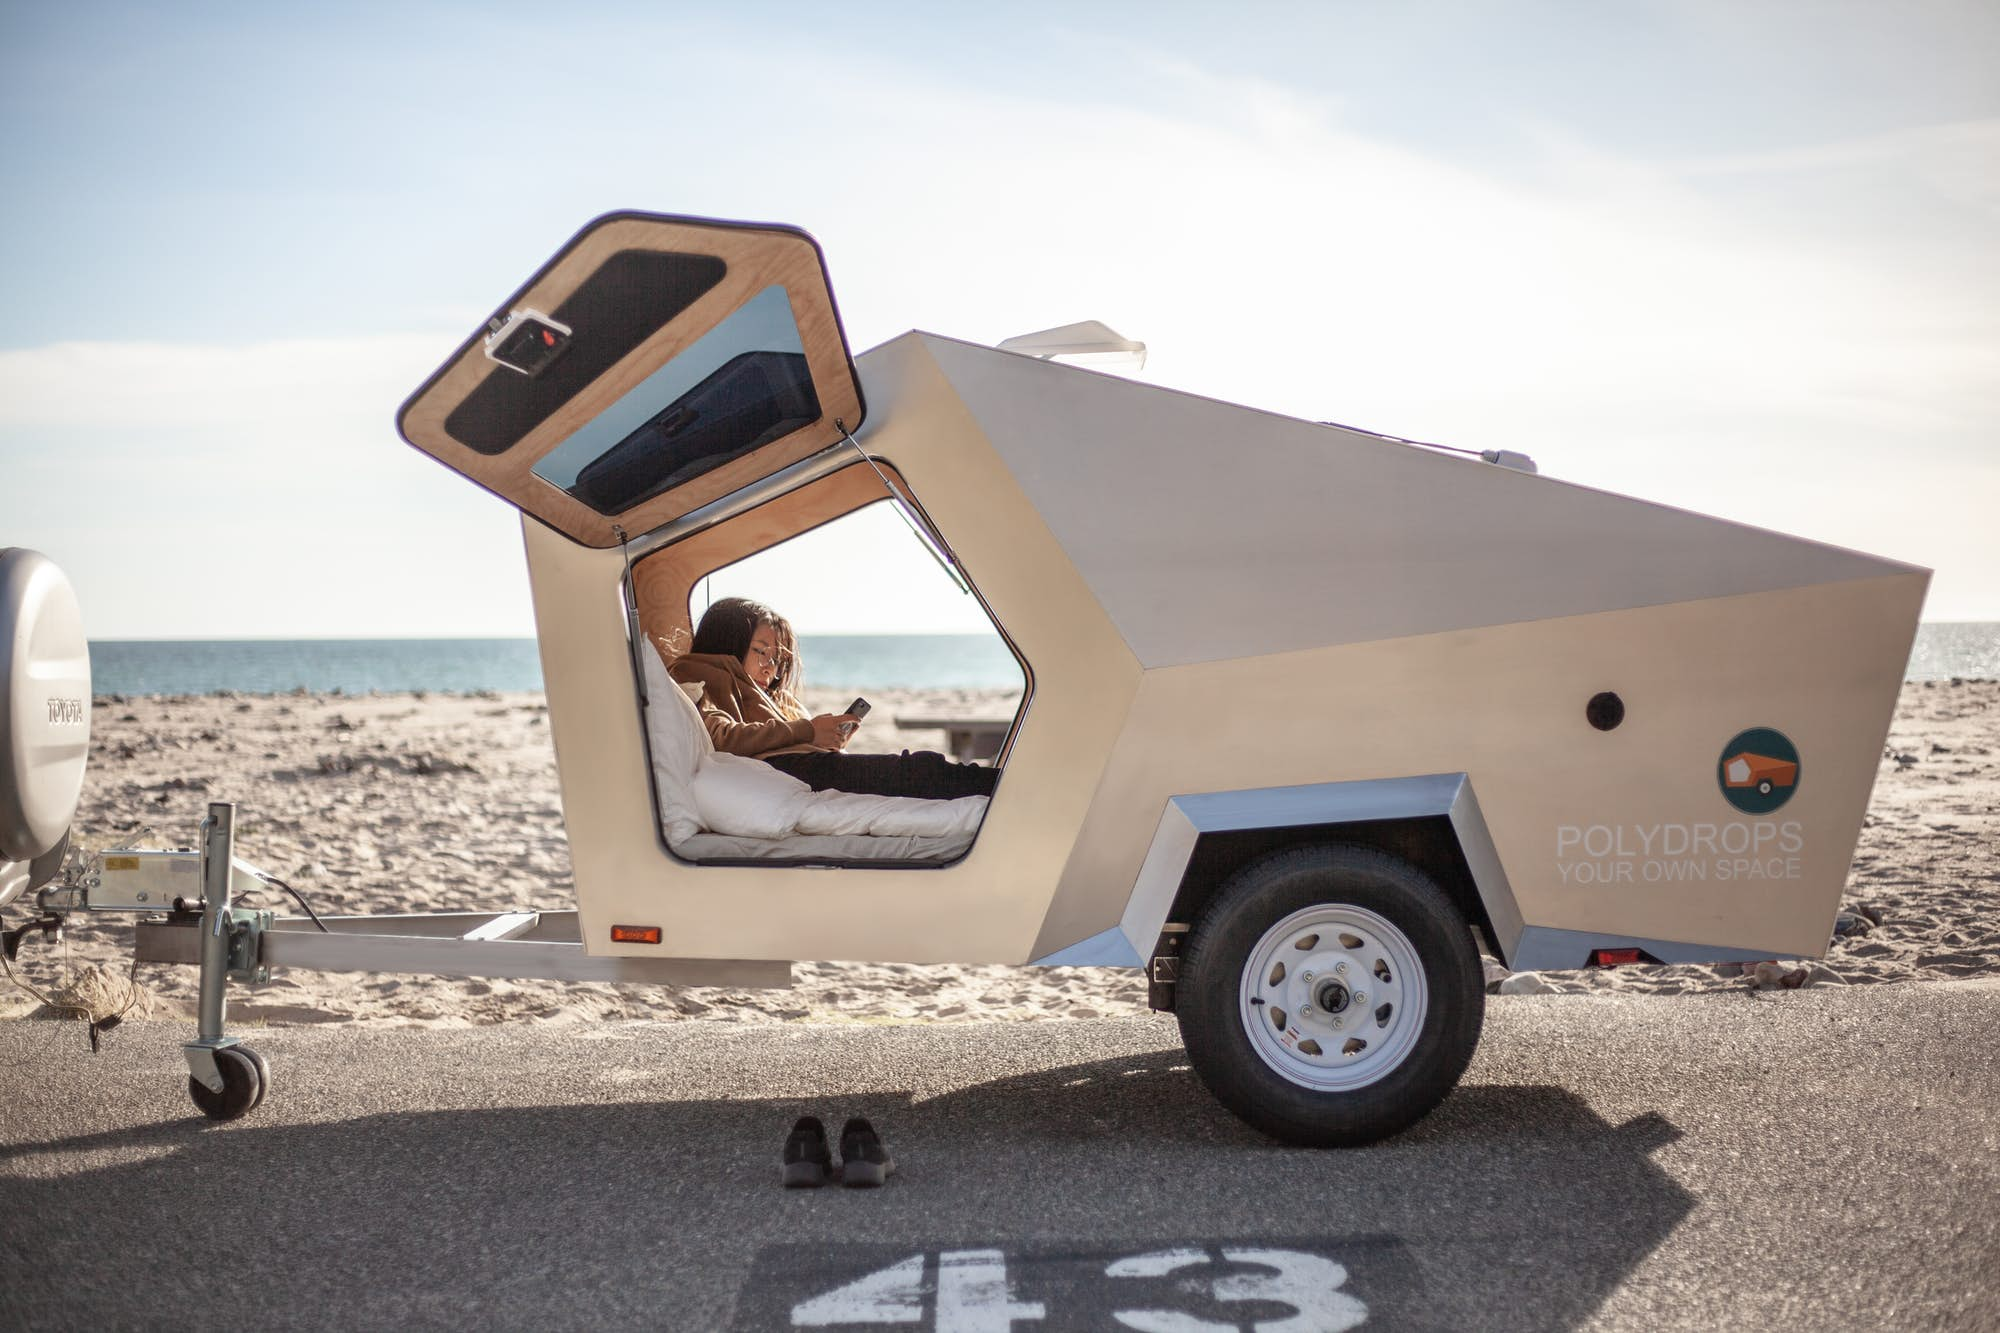 Spaceship-like camper asks $9K, can be towed by any car